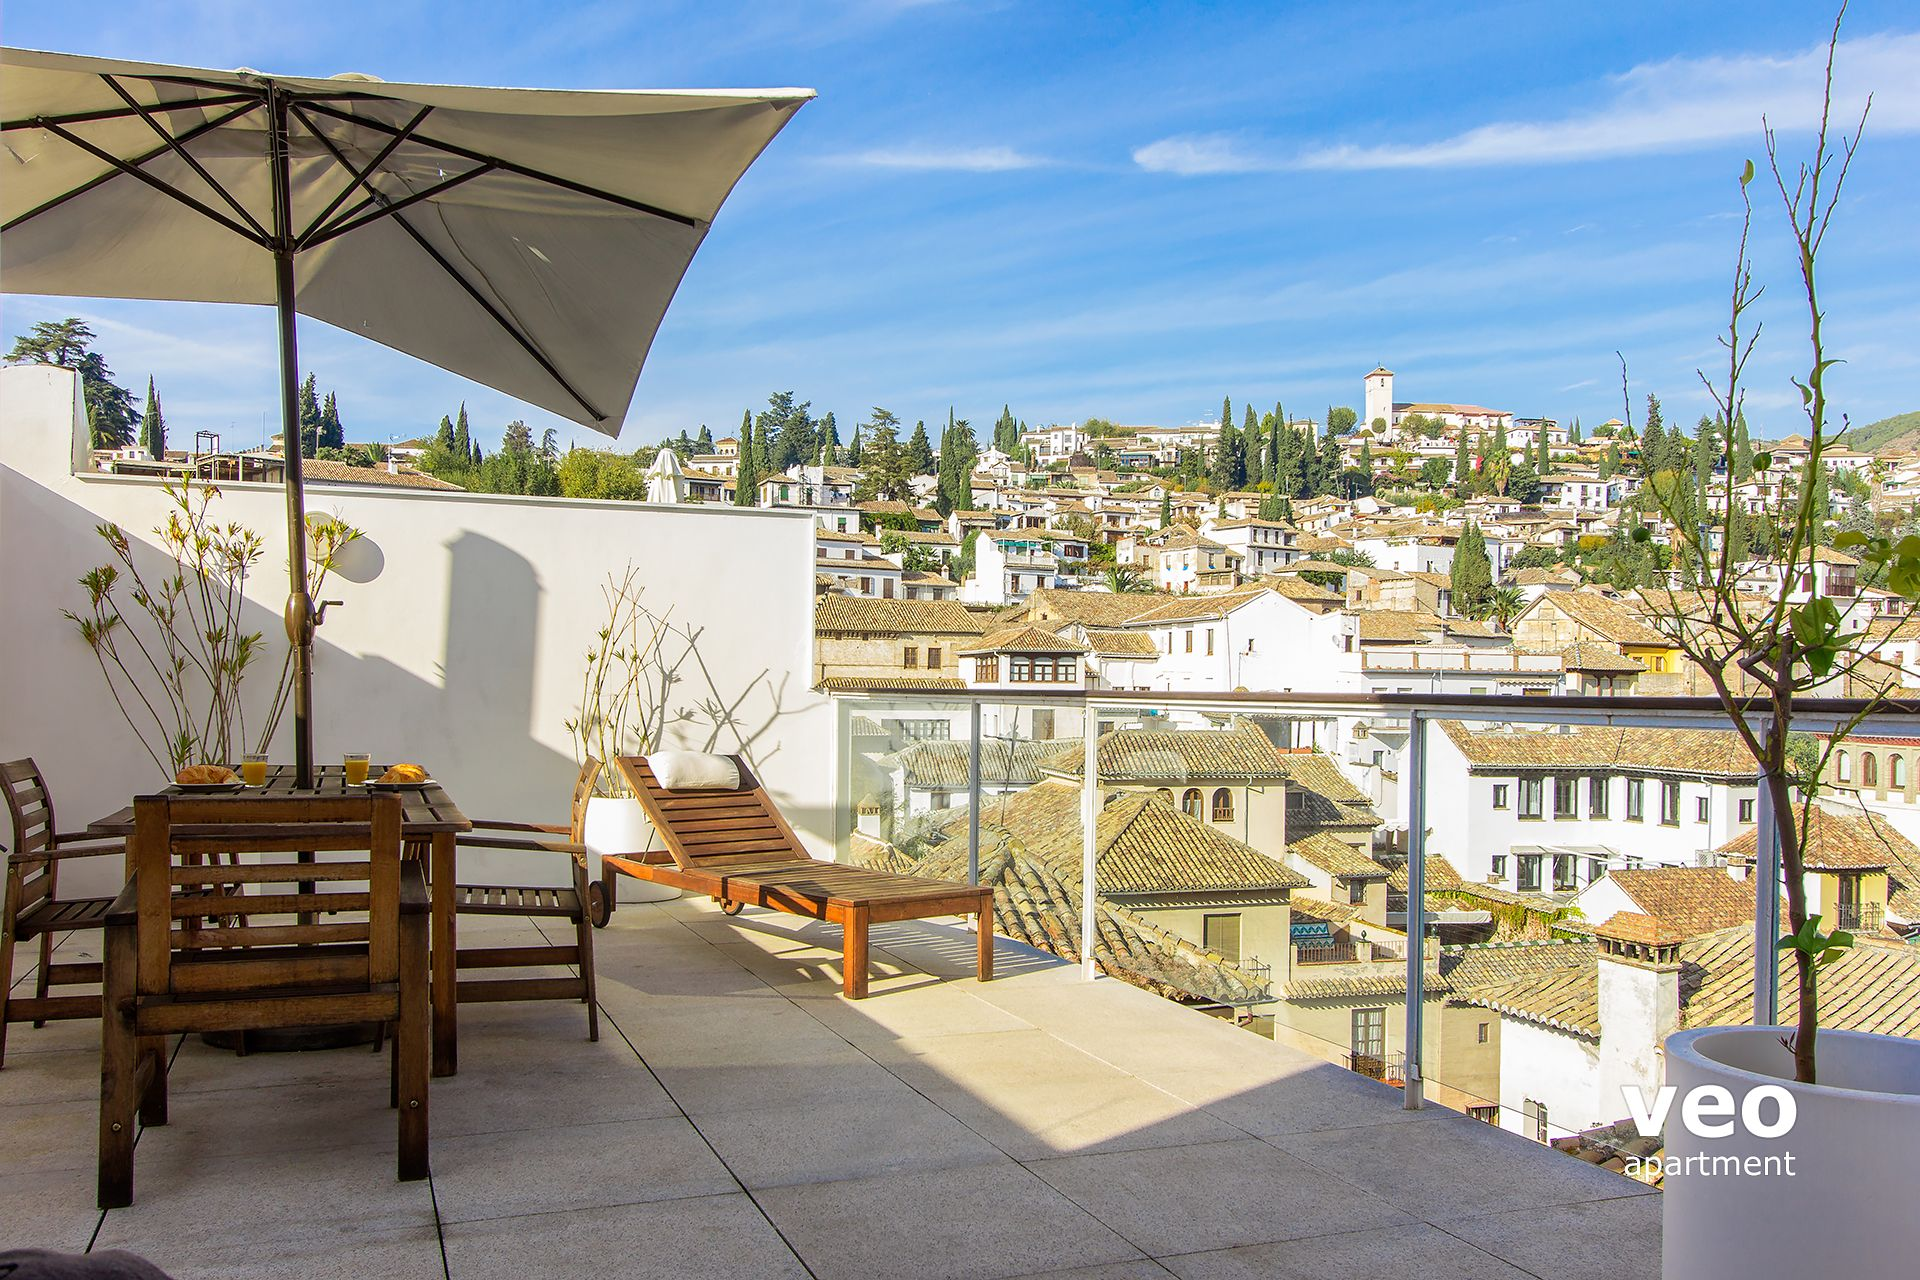 Granada Apartment   The Terrace Is Well Equipped With Garden Furniture  Including A Parasol.